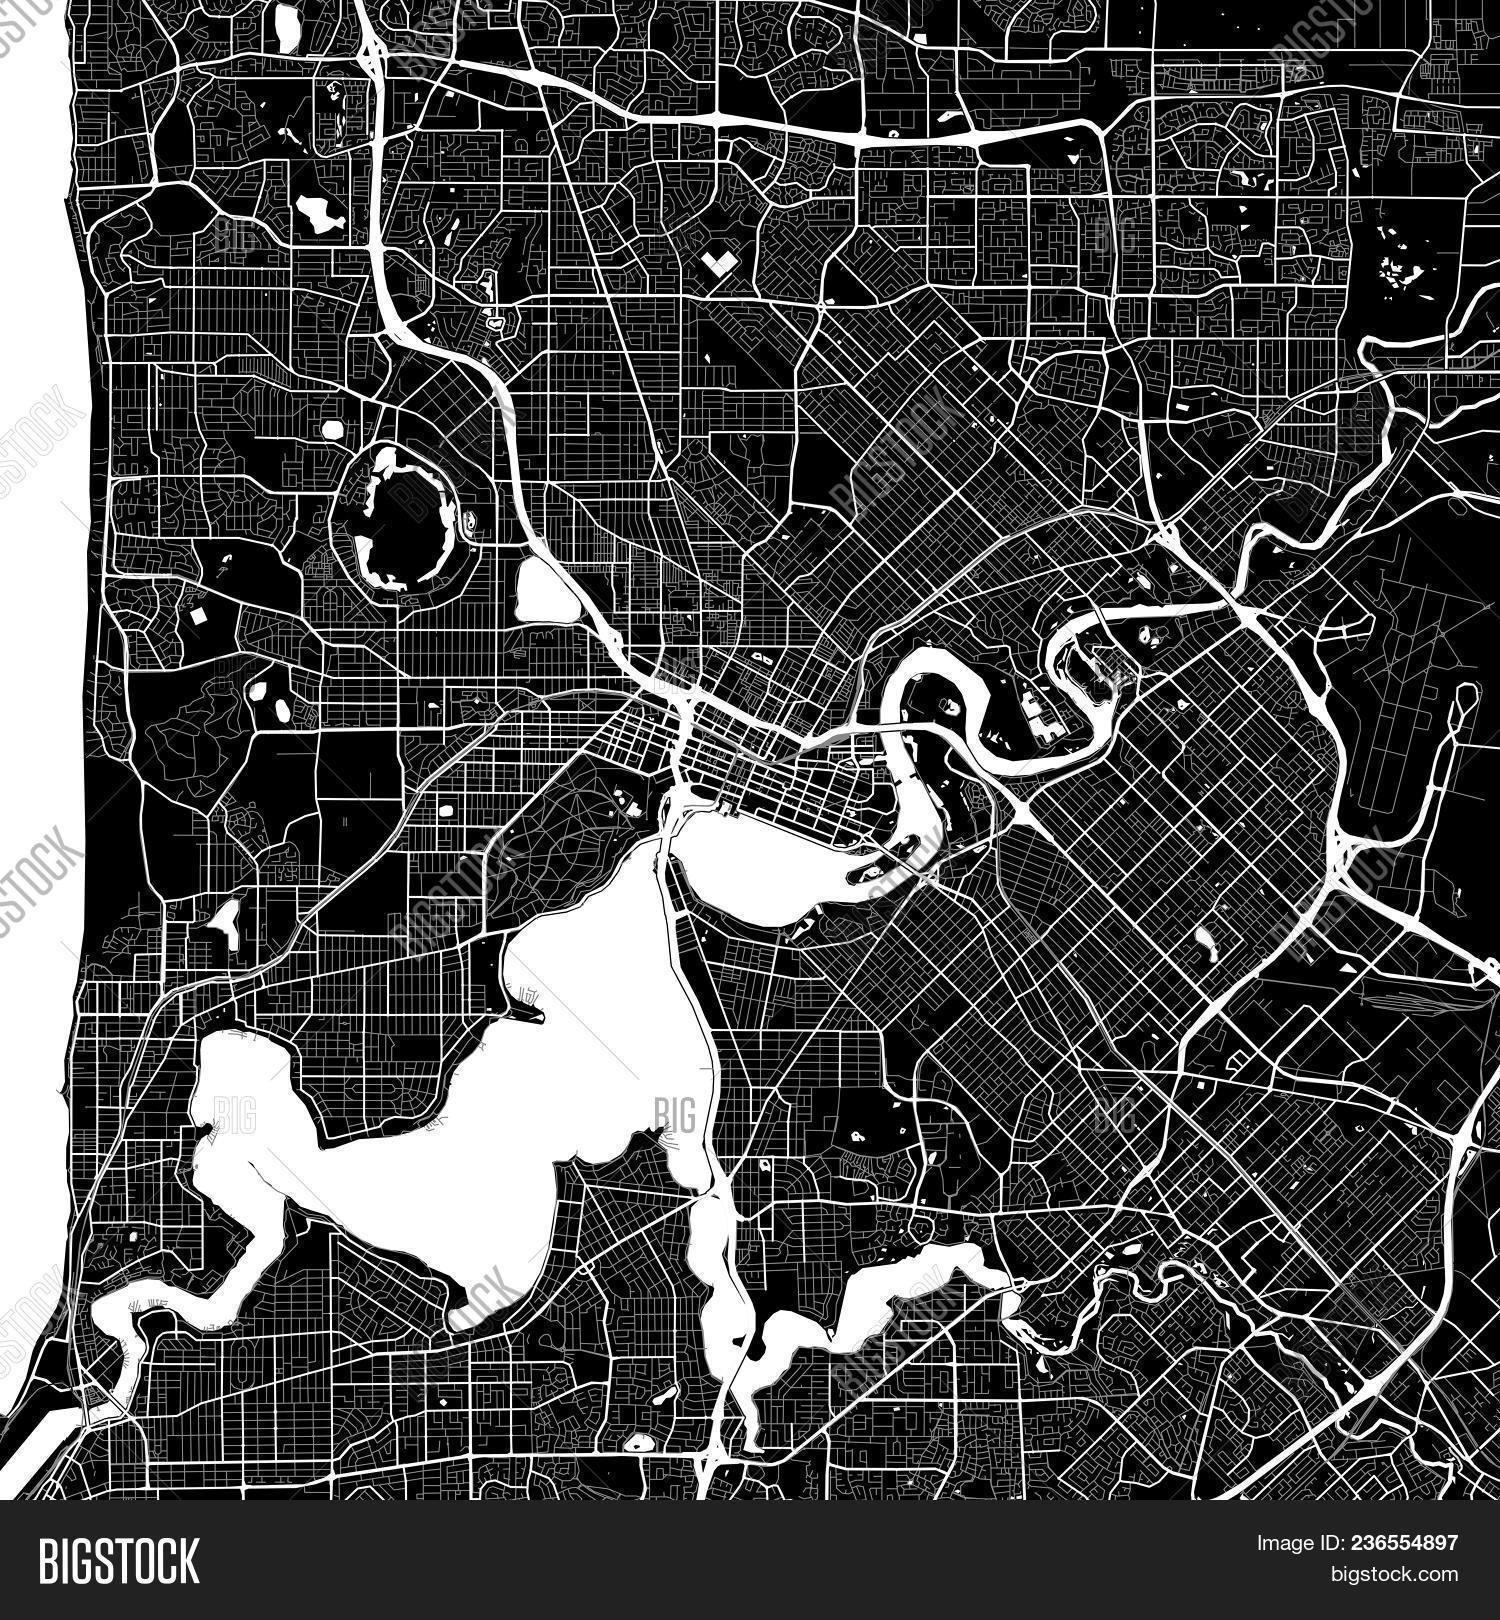 area map of perth australia dark background version for infographic and marketing projects